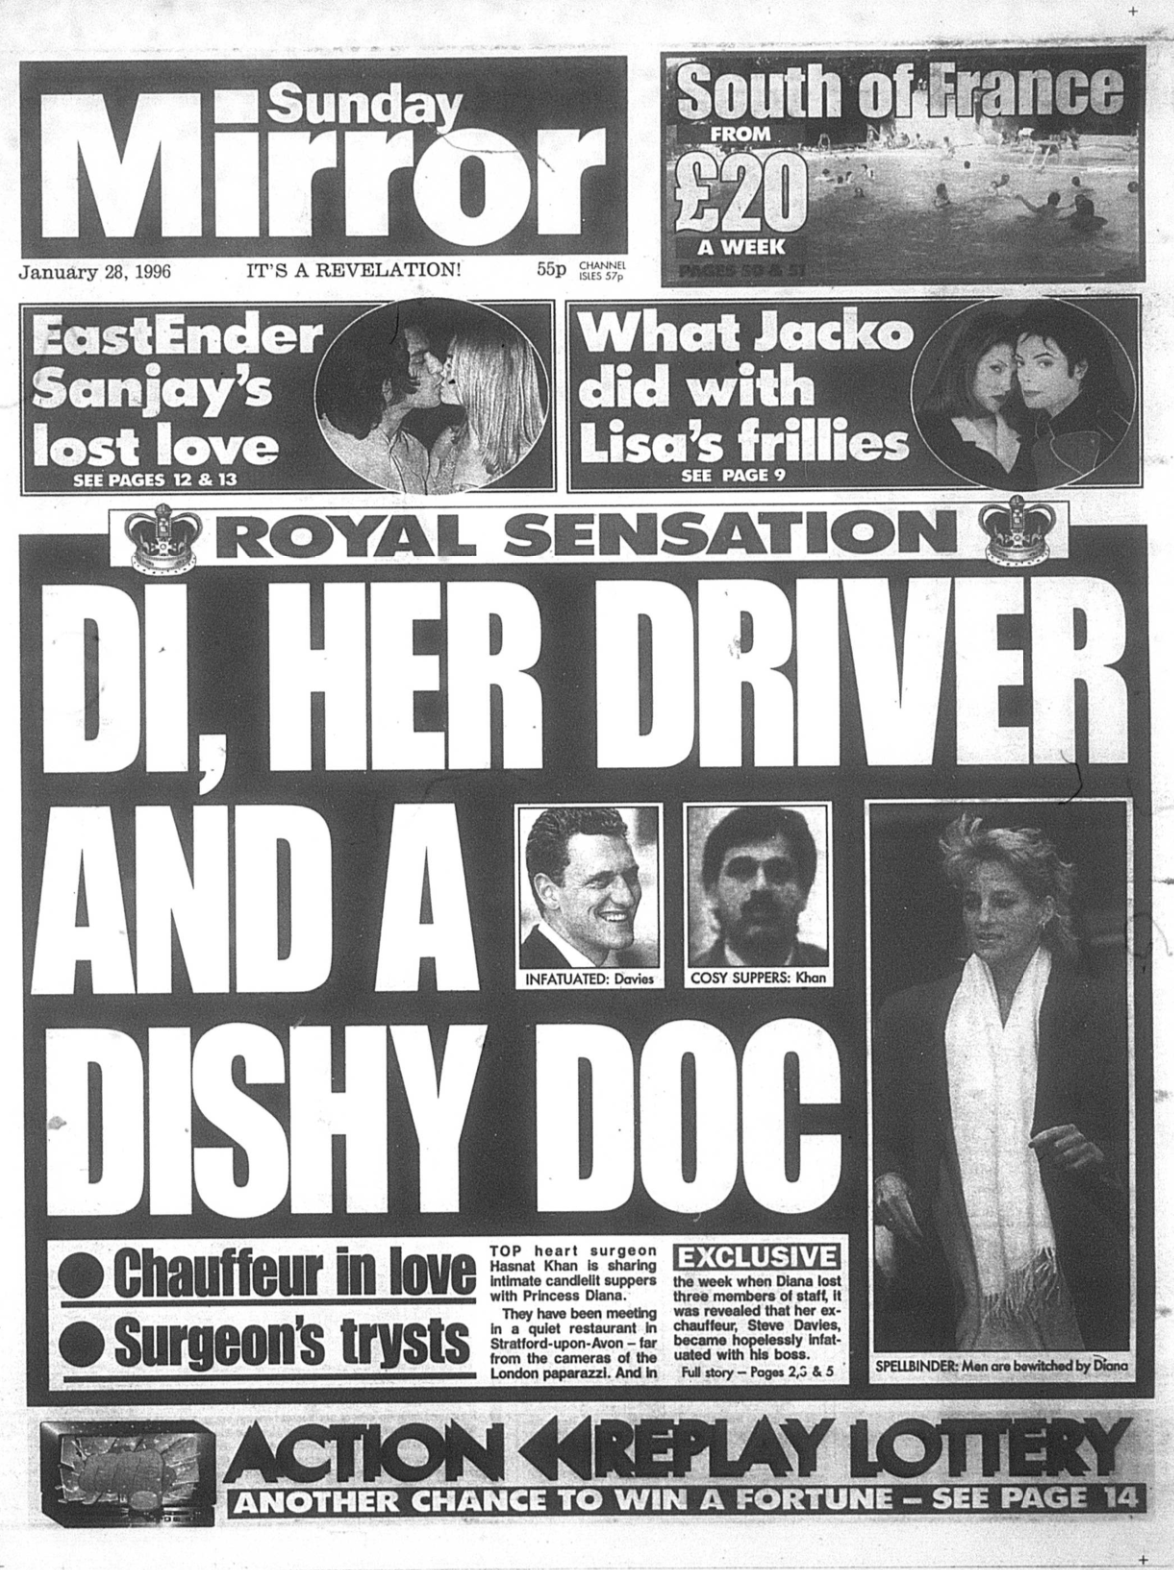 Prince Harry Hacking Exclusive Top Mirror Private Investigator Targeted Diana Princess Of Wales Byline Investigates